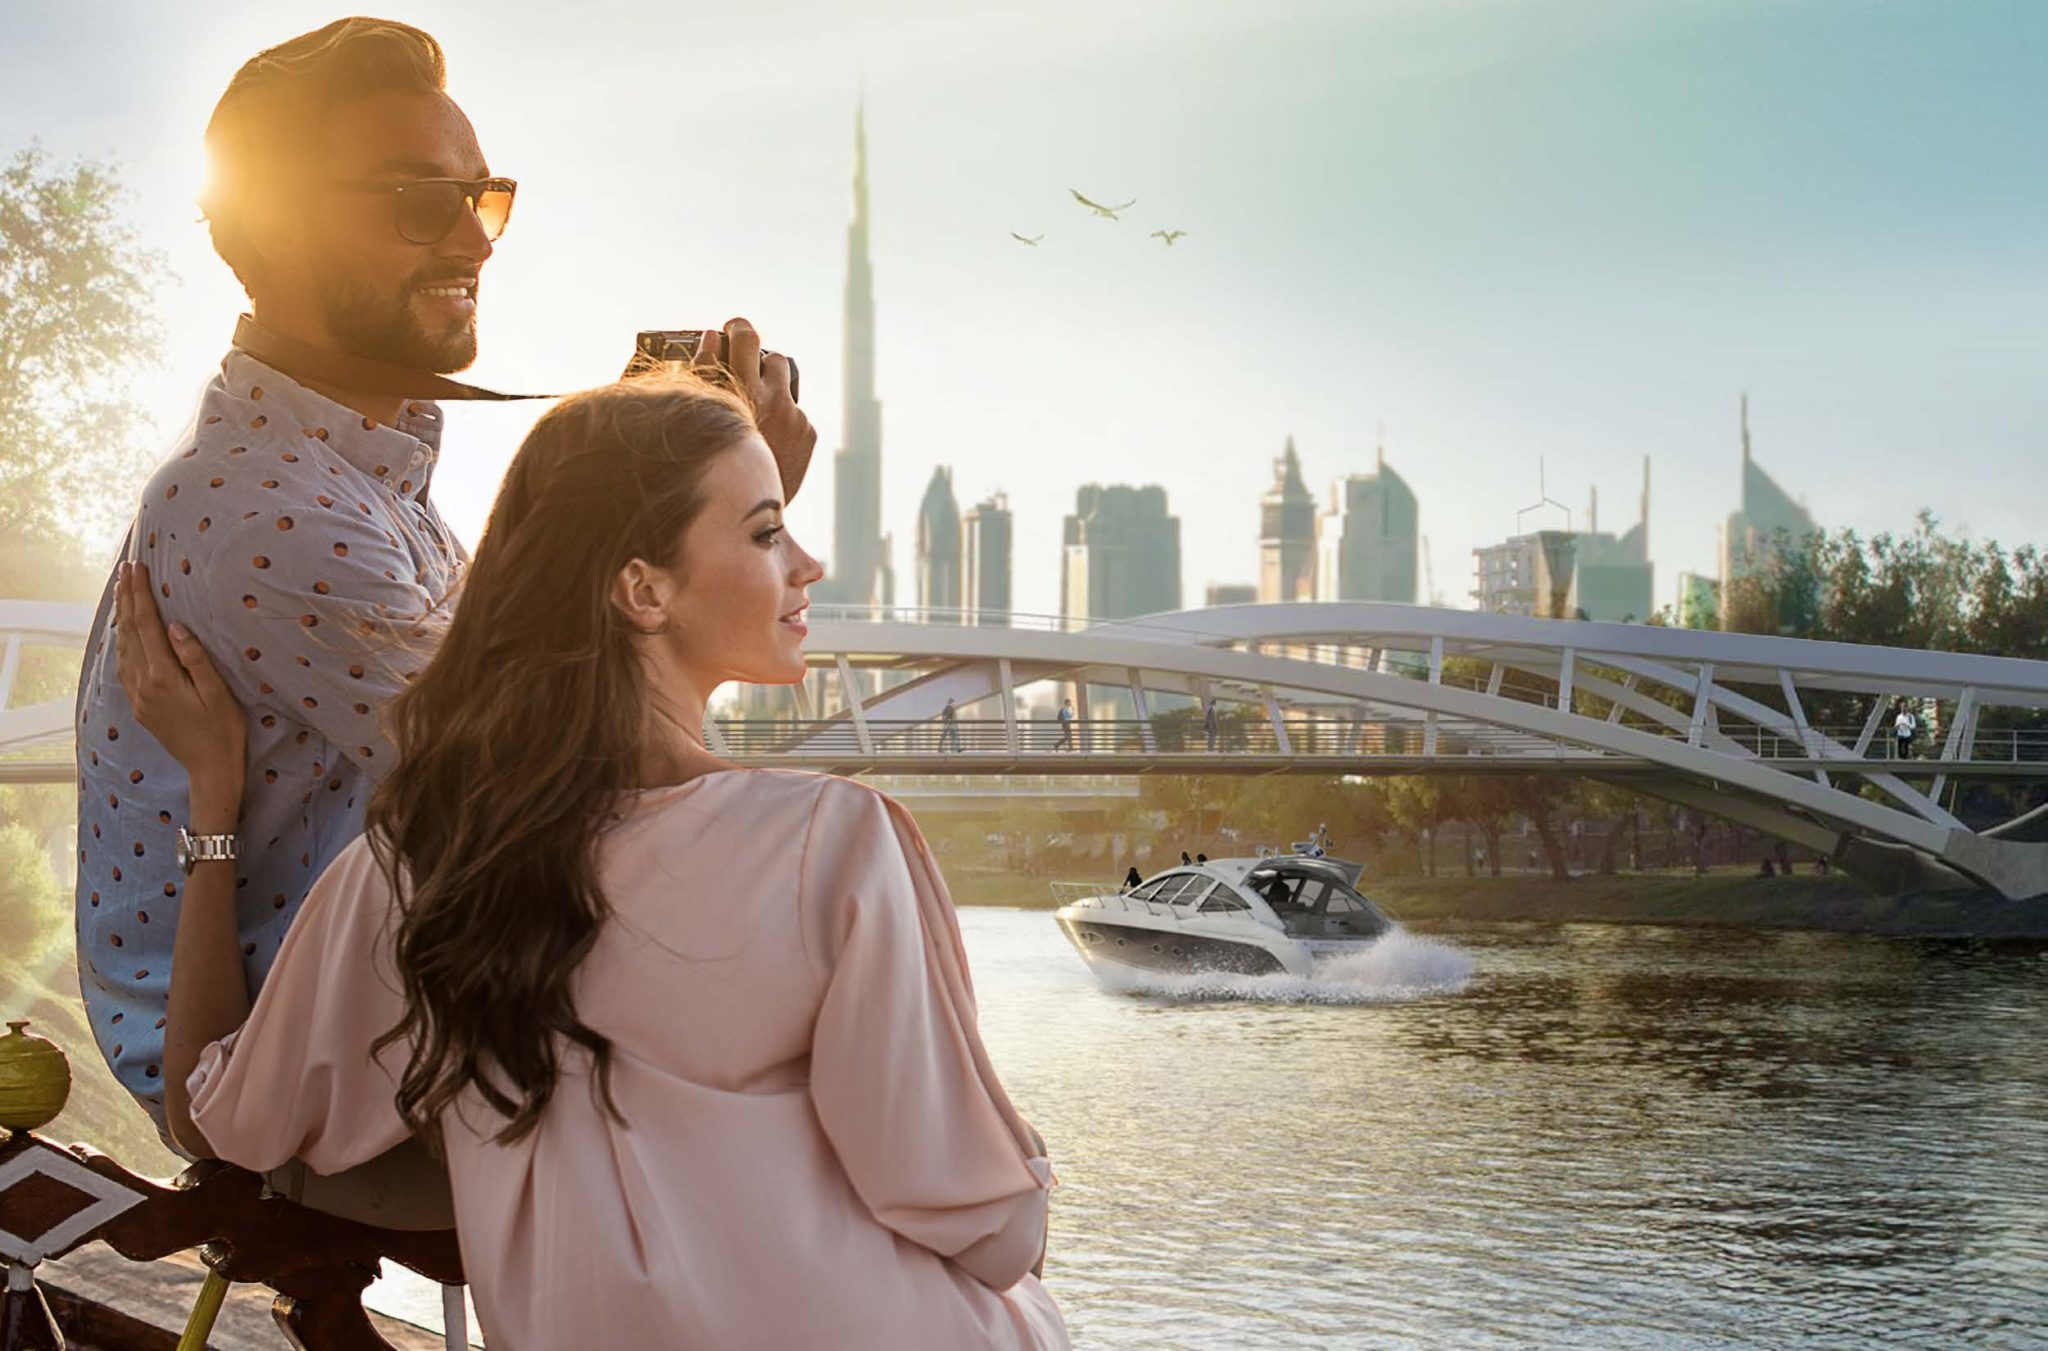 IN THE HEART OF DUBAI AND ALONG THE CANAL